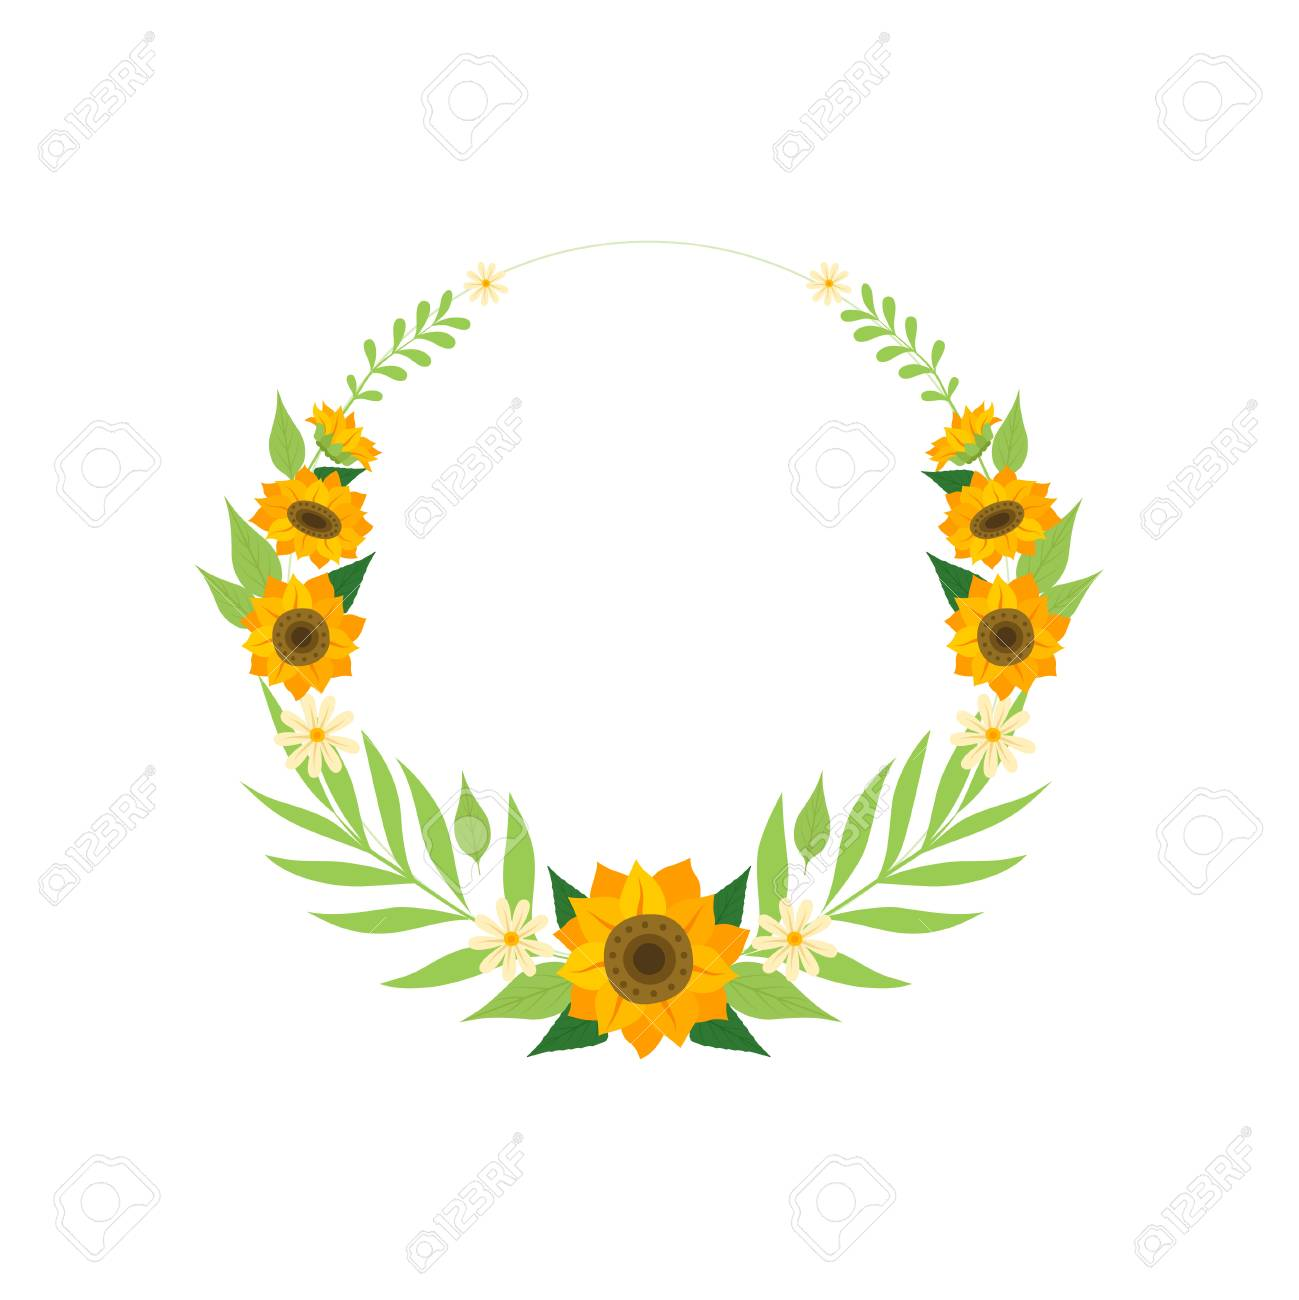 Floral Wreath With Sunflowers Circle Frame With Flowers And Royalty Free Cliparts Vectors And Stock Illustration Image 121061670